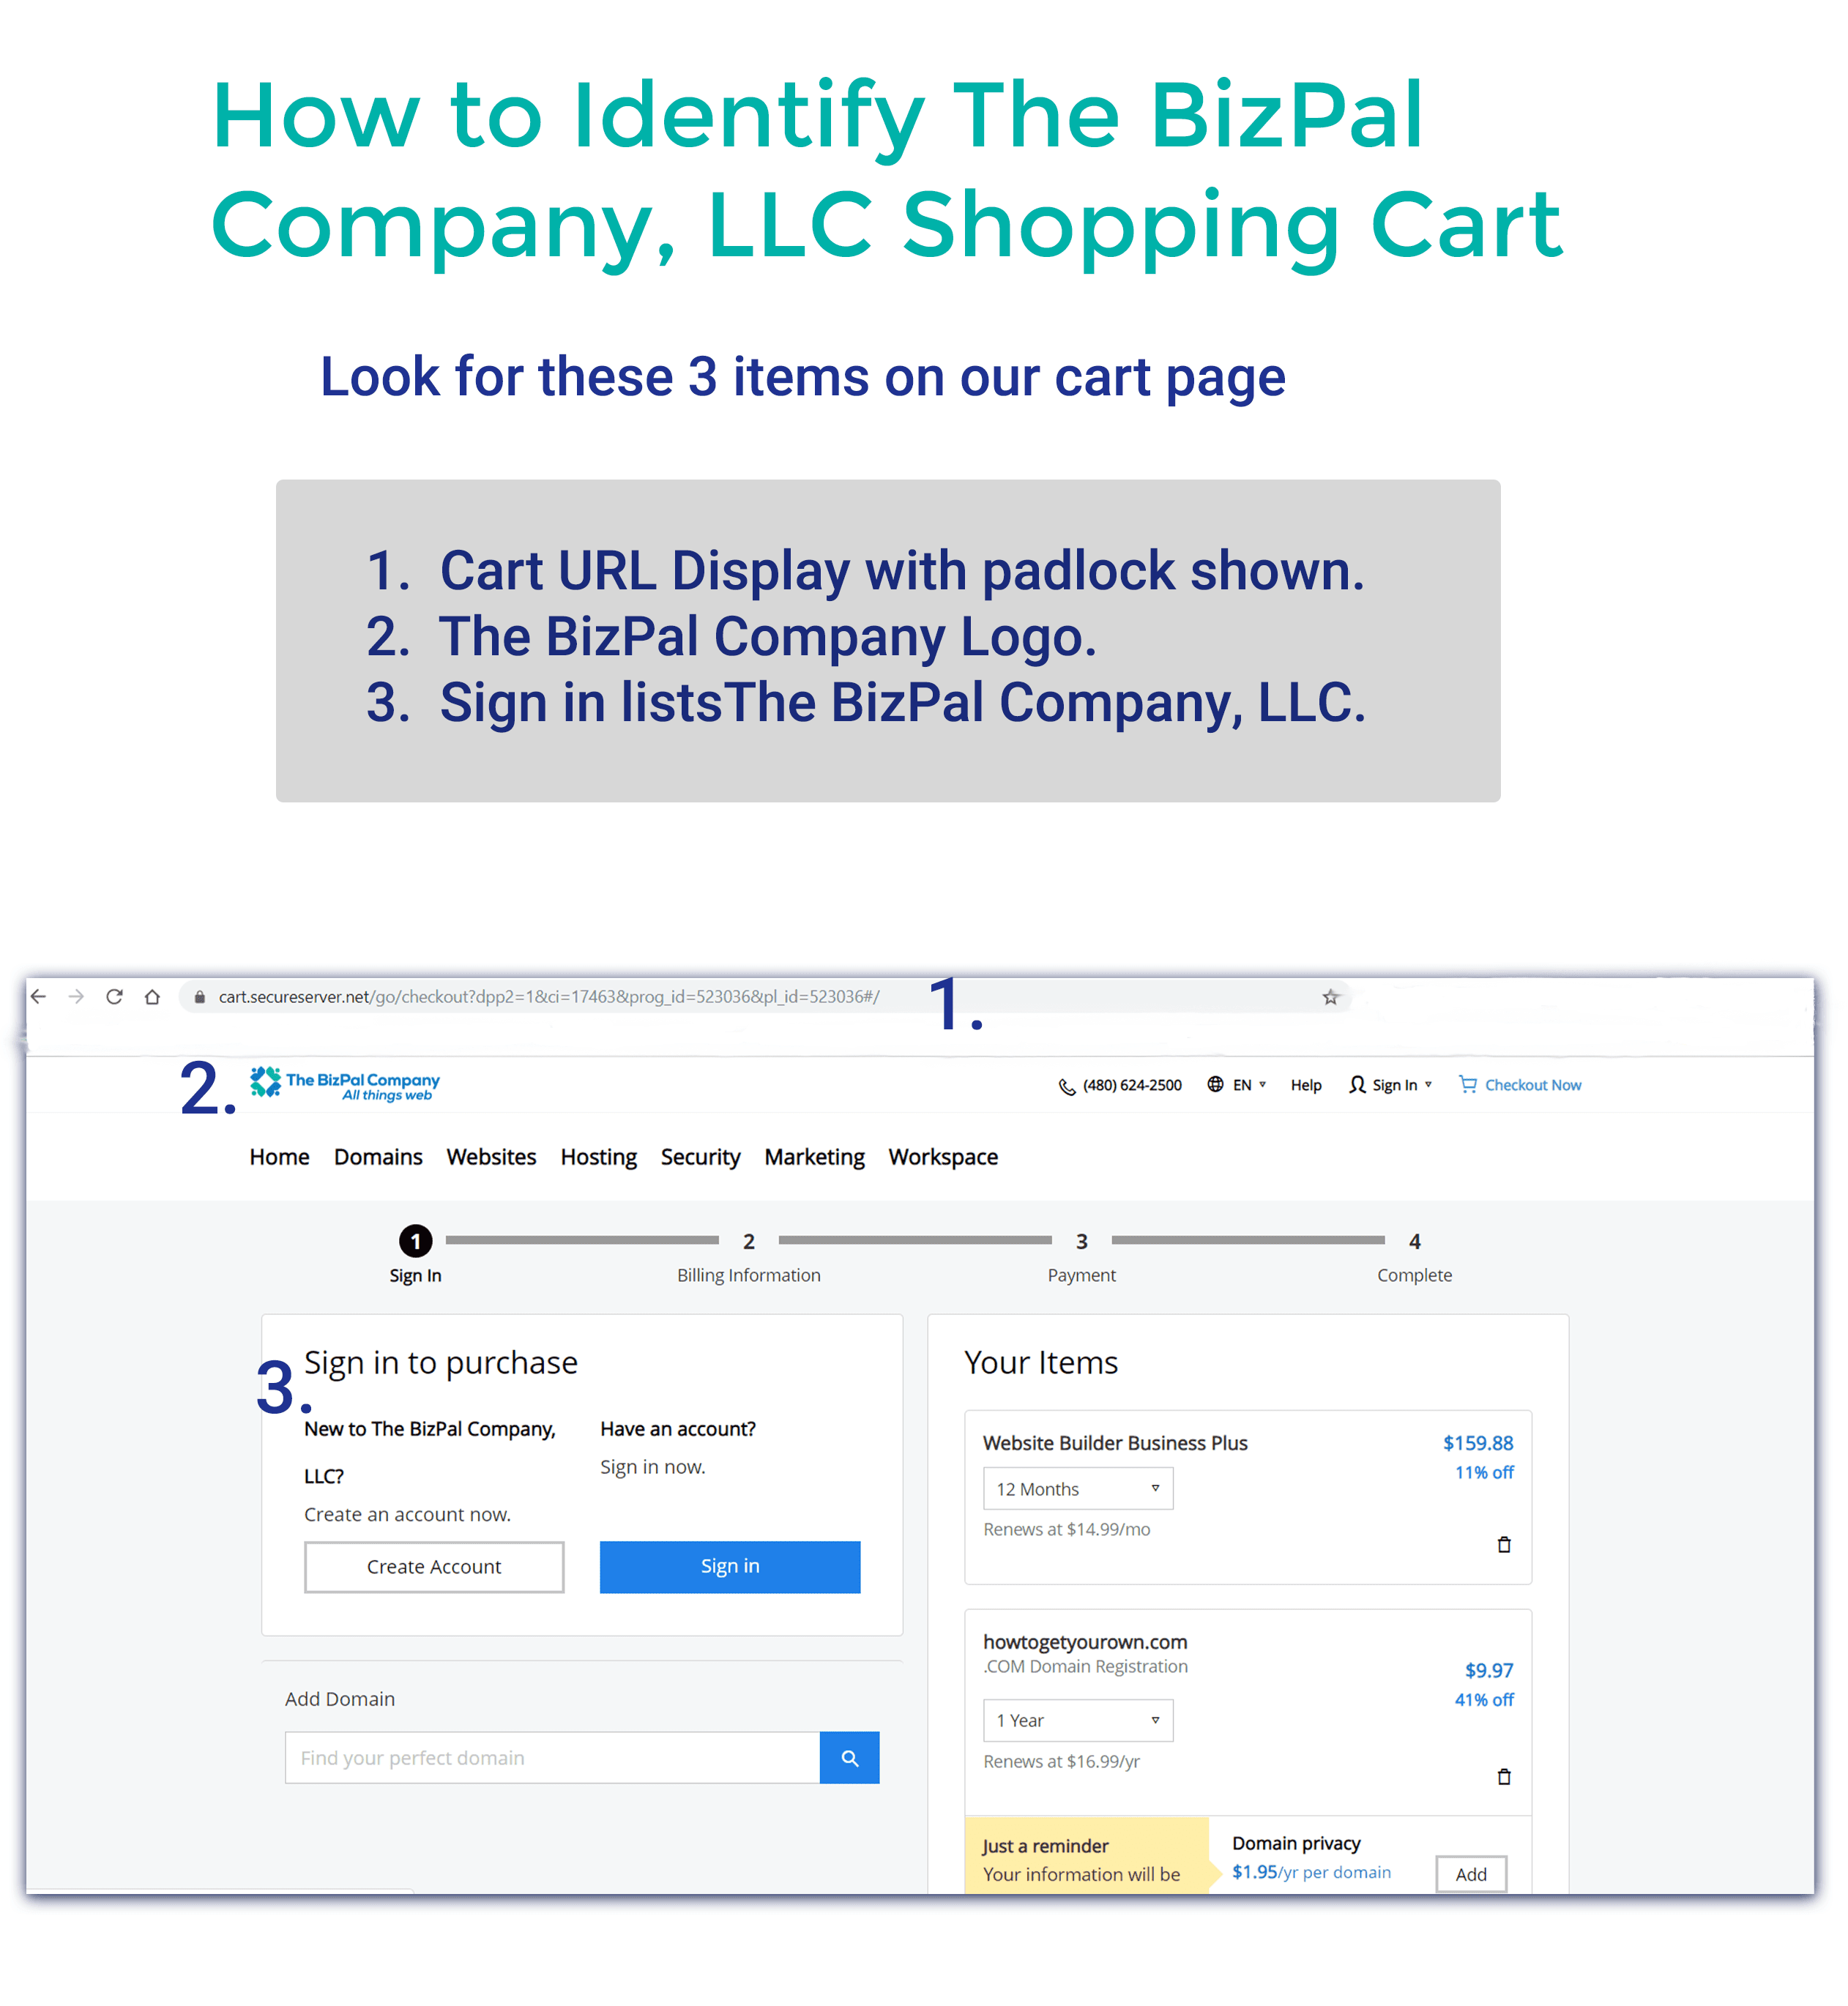 How to RecognizeThe Bizpal Company's Shopping Cart Page